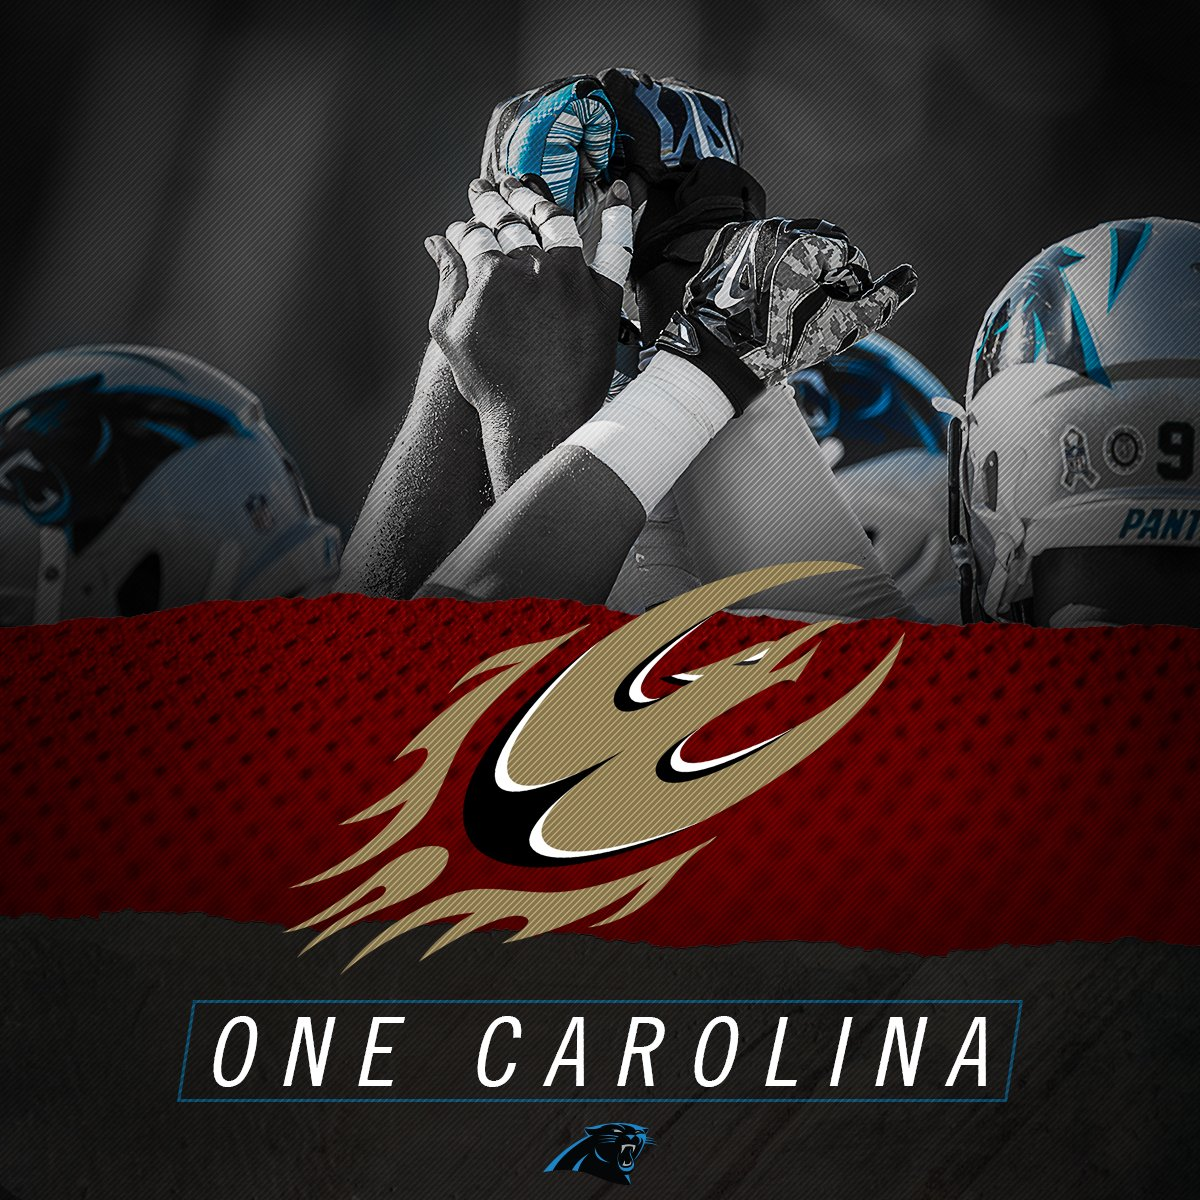 Best of luck tomorrow, @Panthers! You know we have your back here at @elonuniversity.  #OneCarolina #KeepPounding https://t.co/zK8gyLRcYh